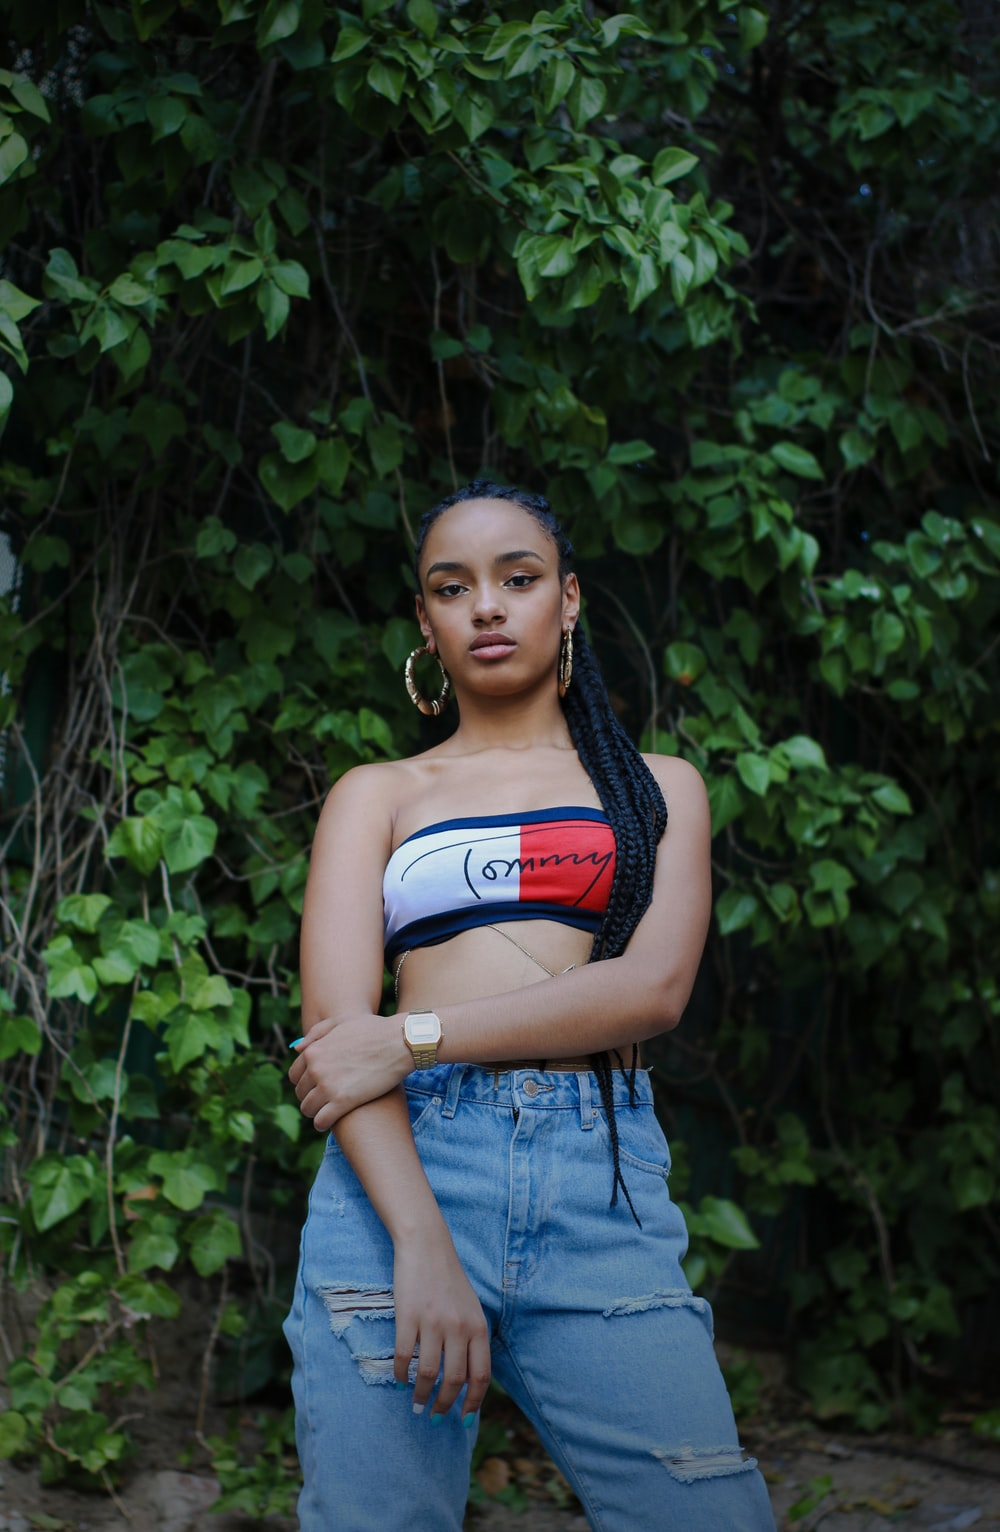 woman wearing red and white crop top